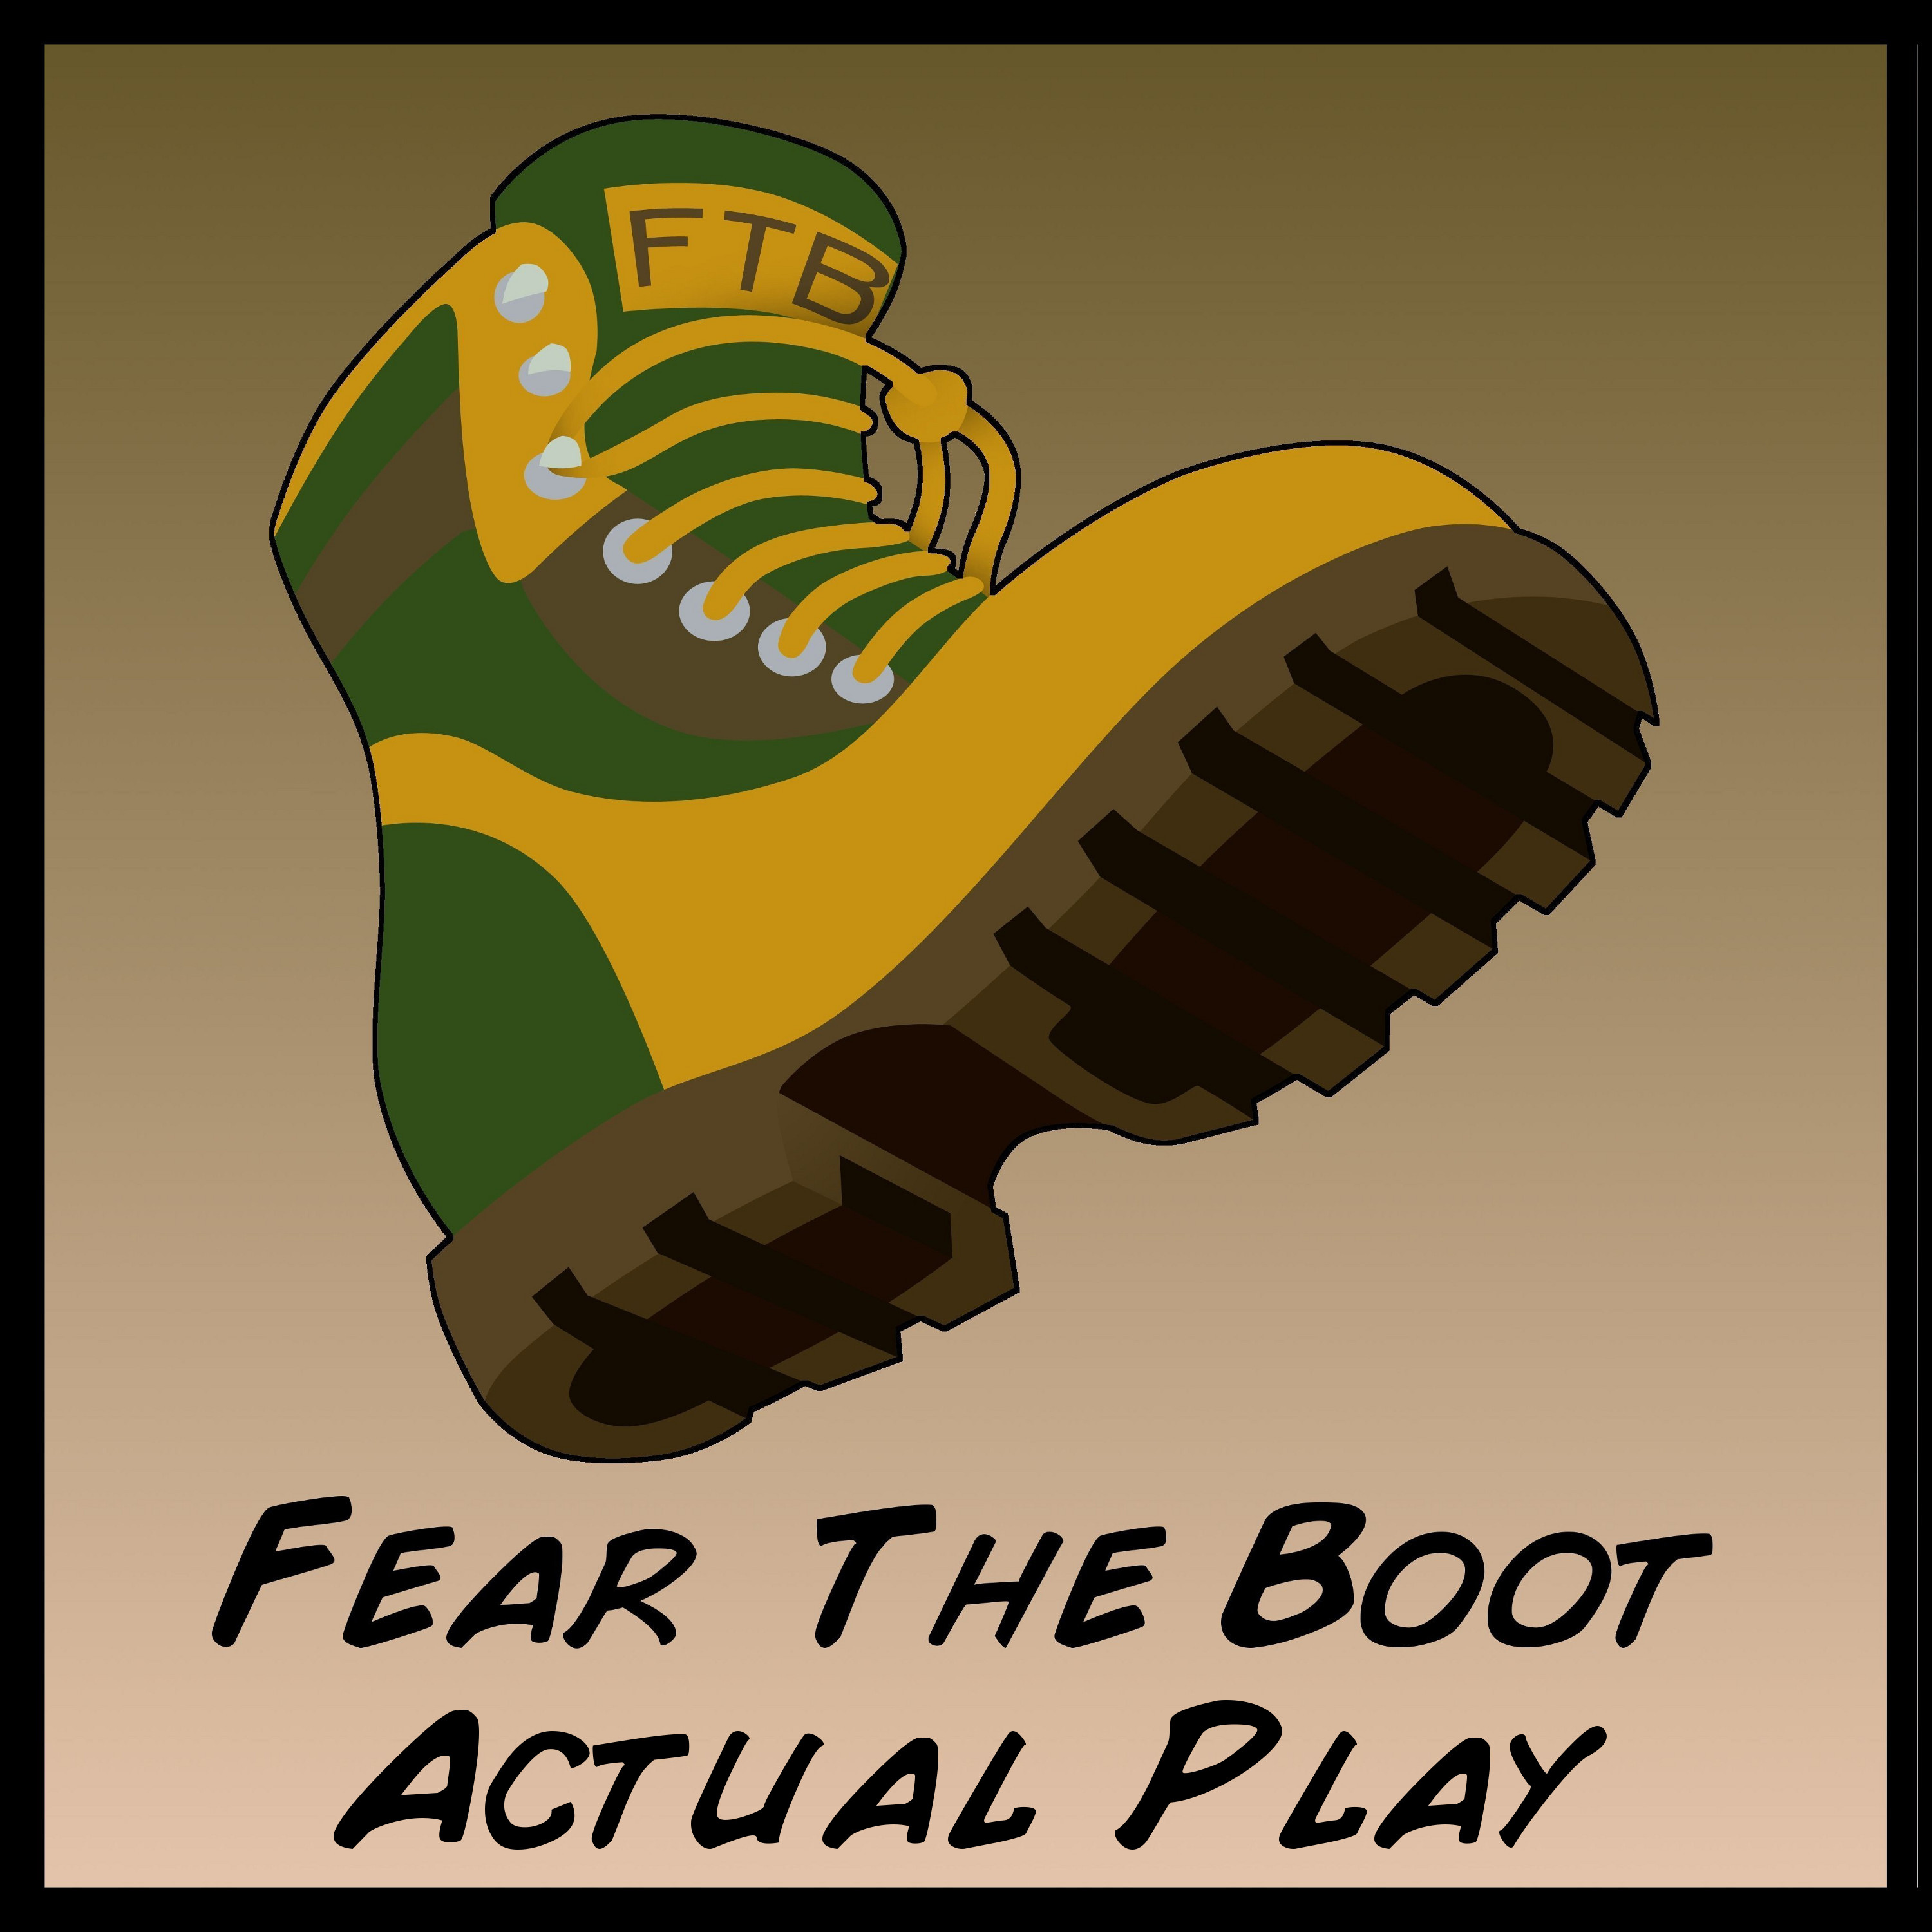 Fear the Boot, Actual Play